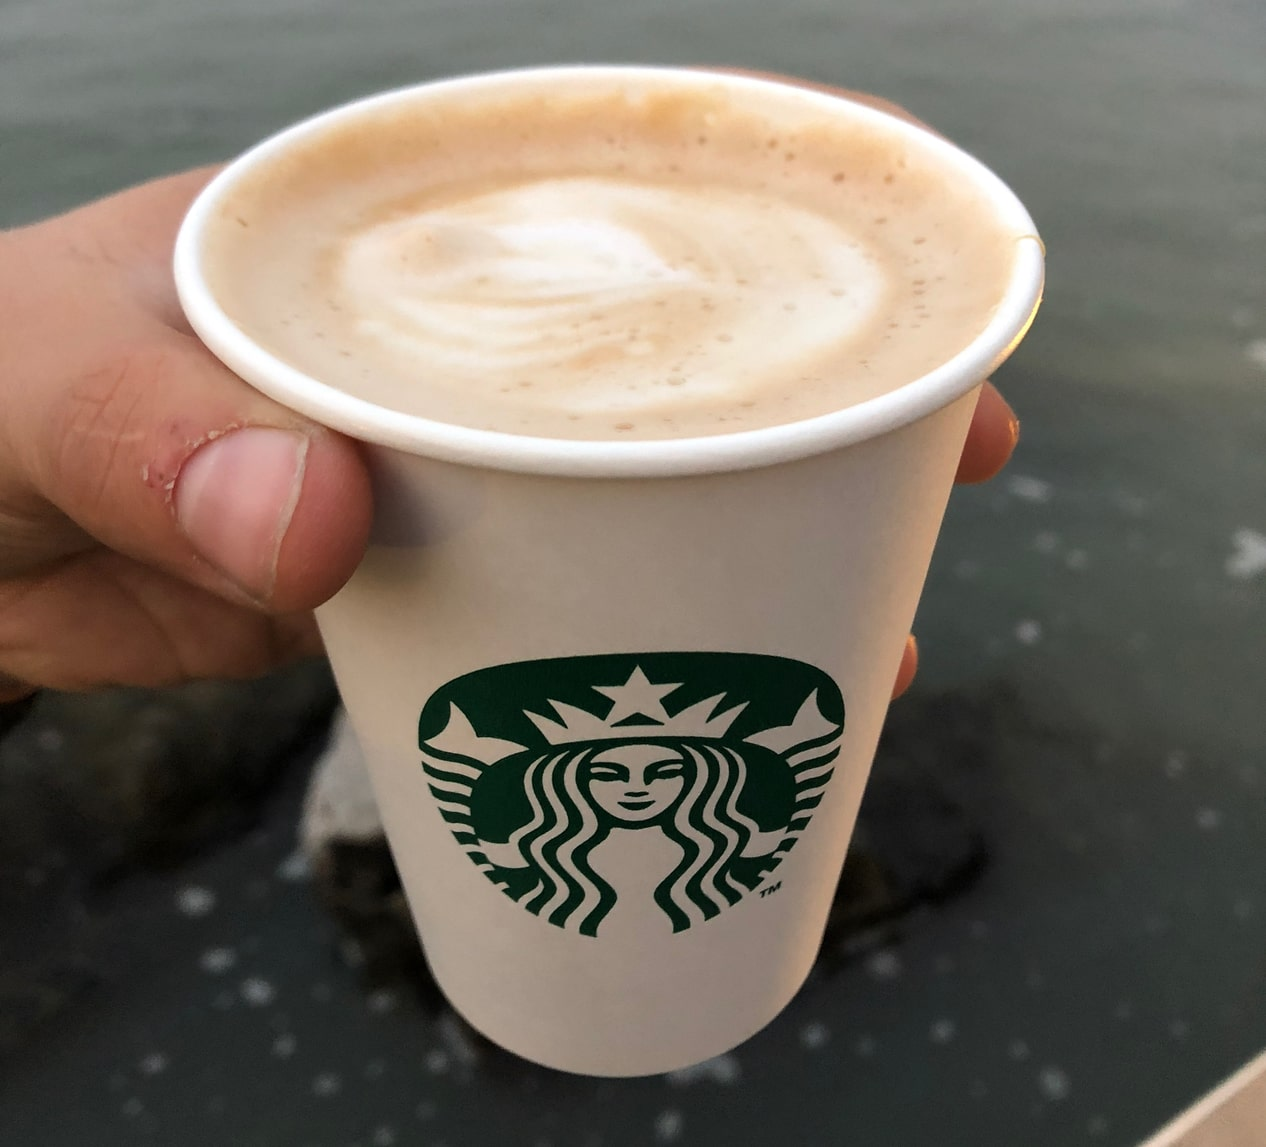 Starbucks Is Serving Up Beer-Flavored Lattes In China